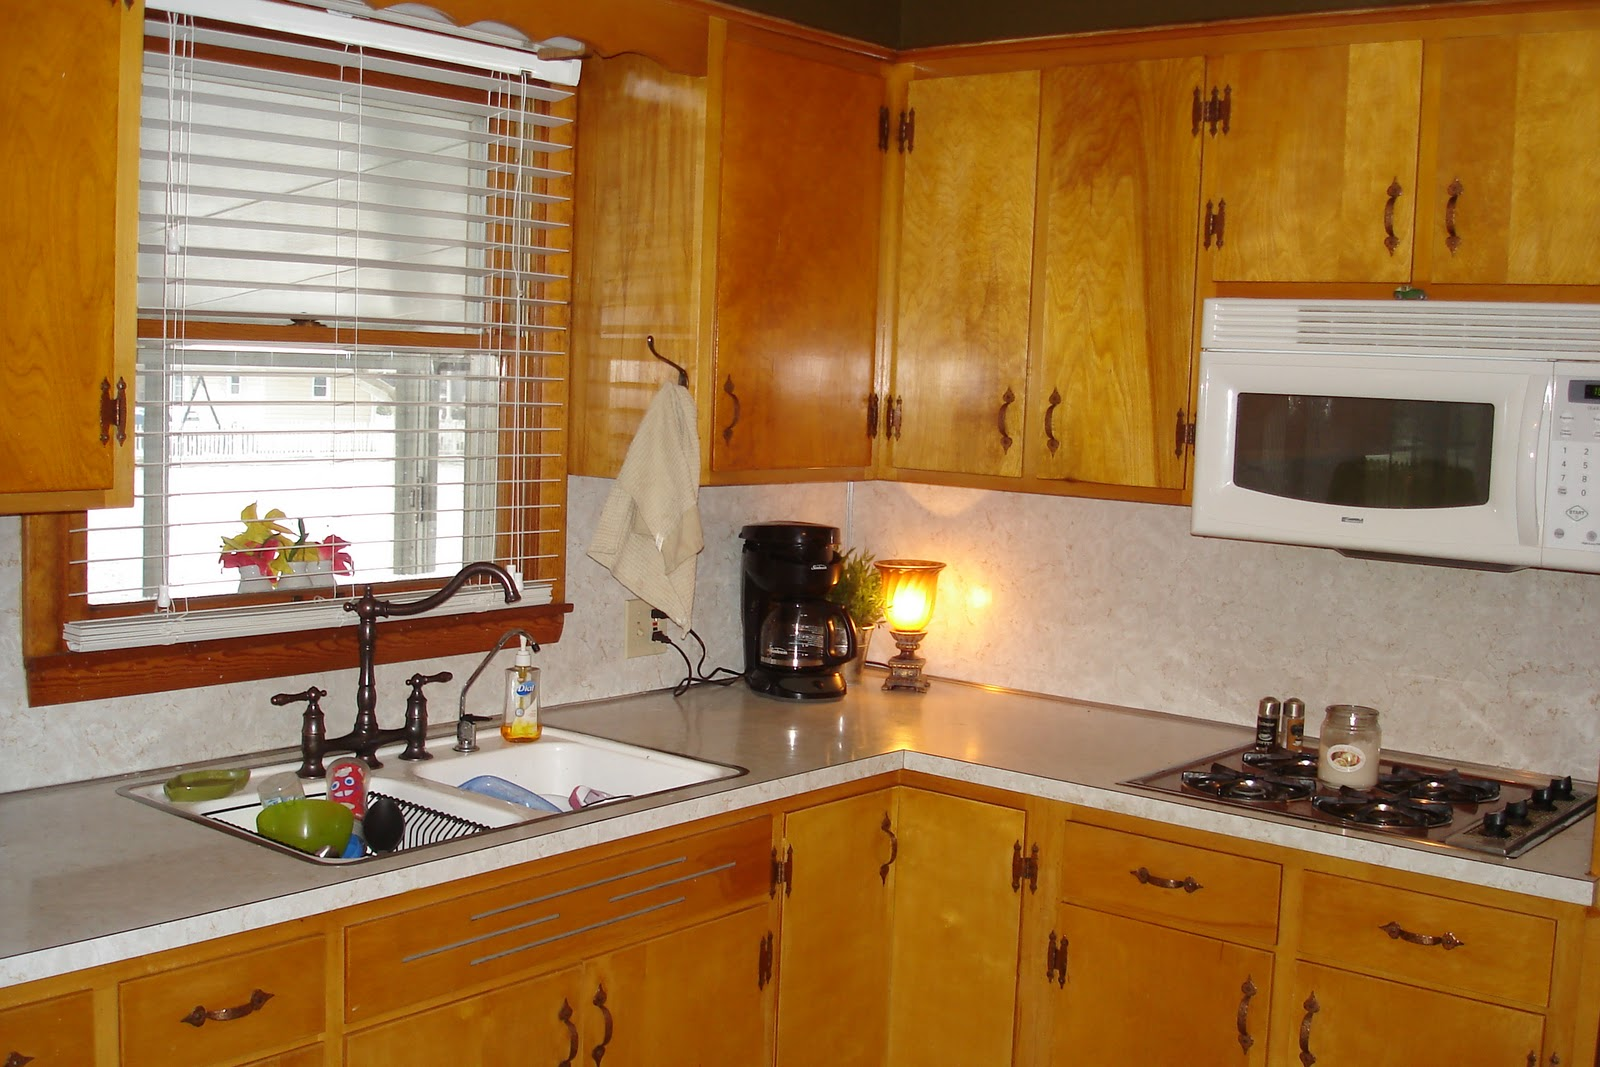 19 inexpensive ways to fix up your kitchen photos huffpost for Kitchen cabinets for cheap